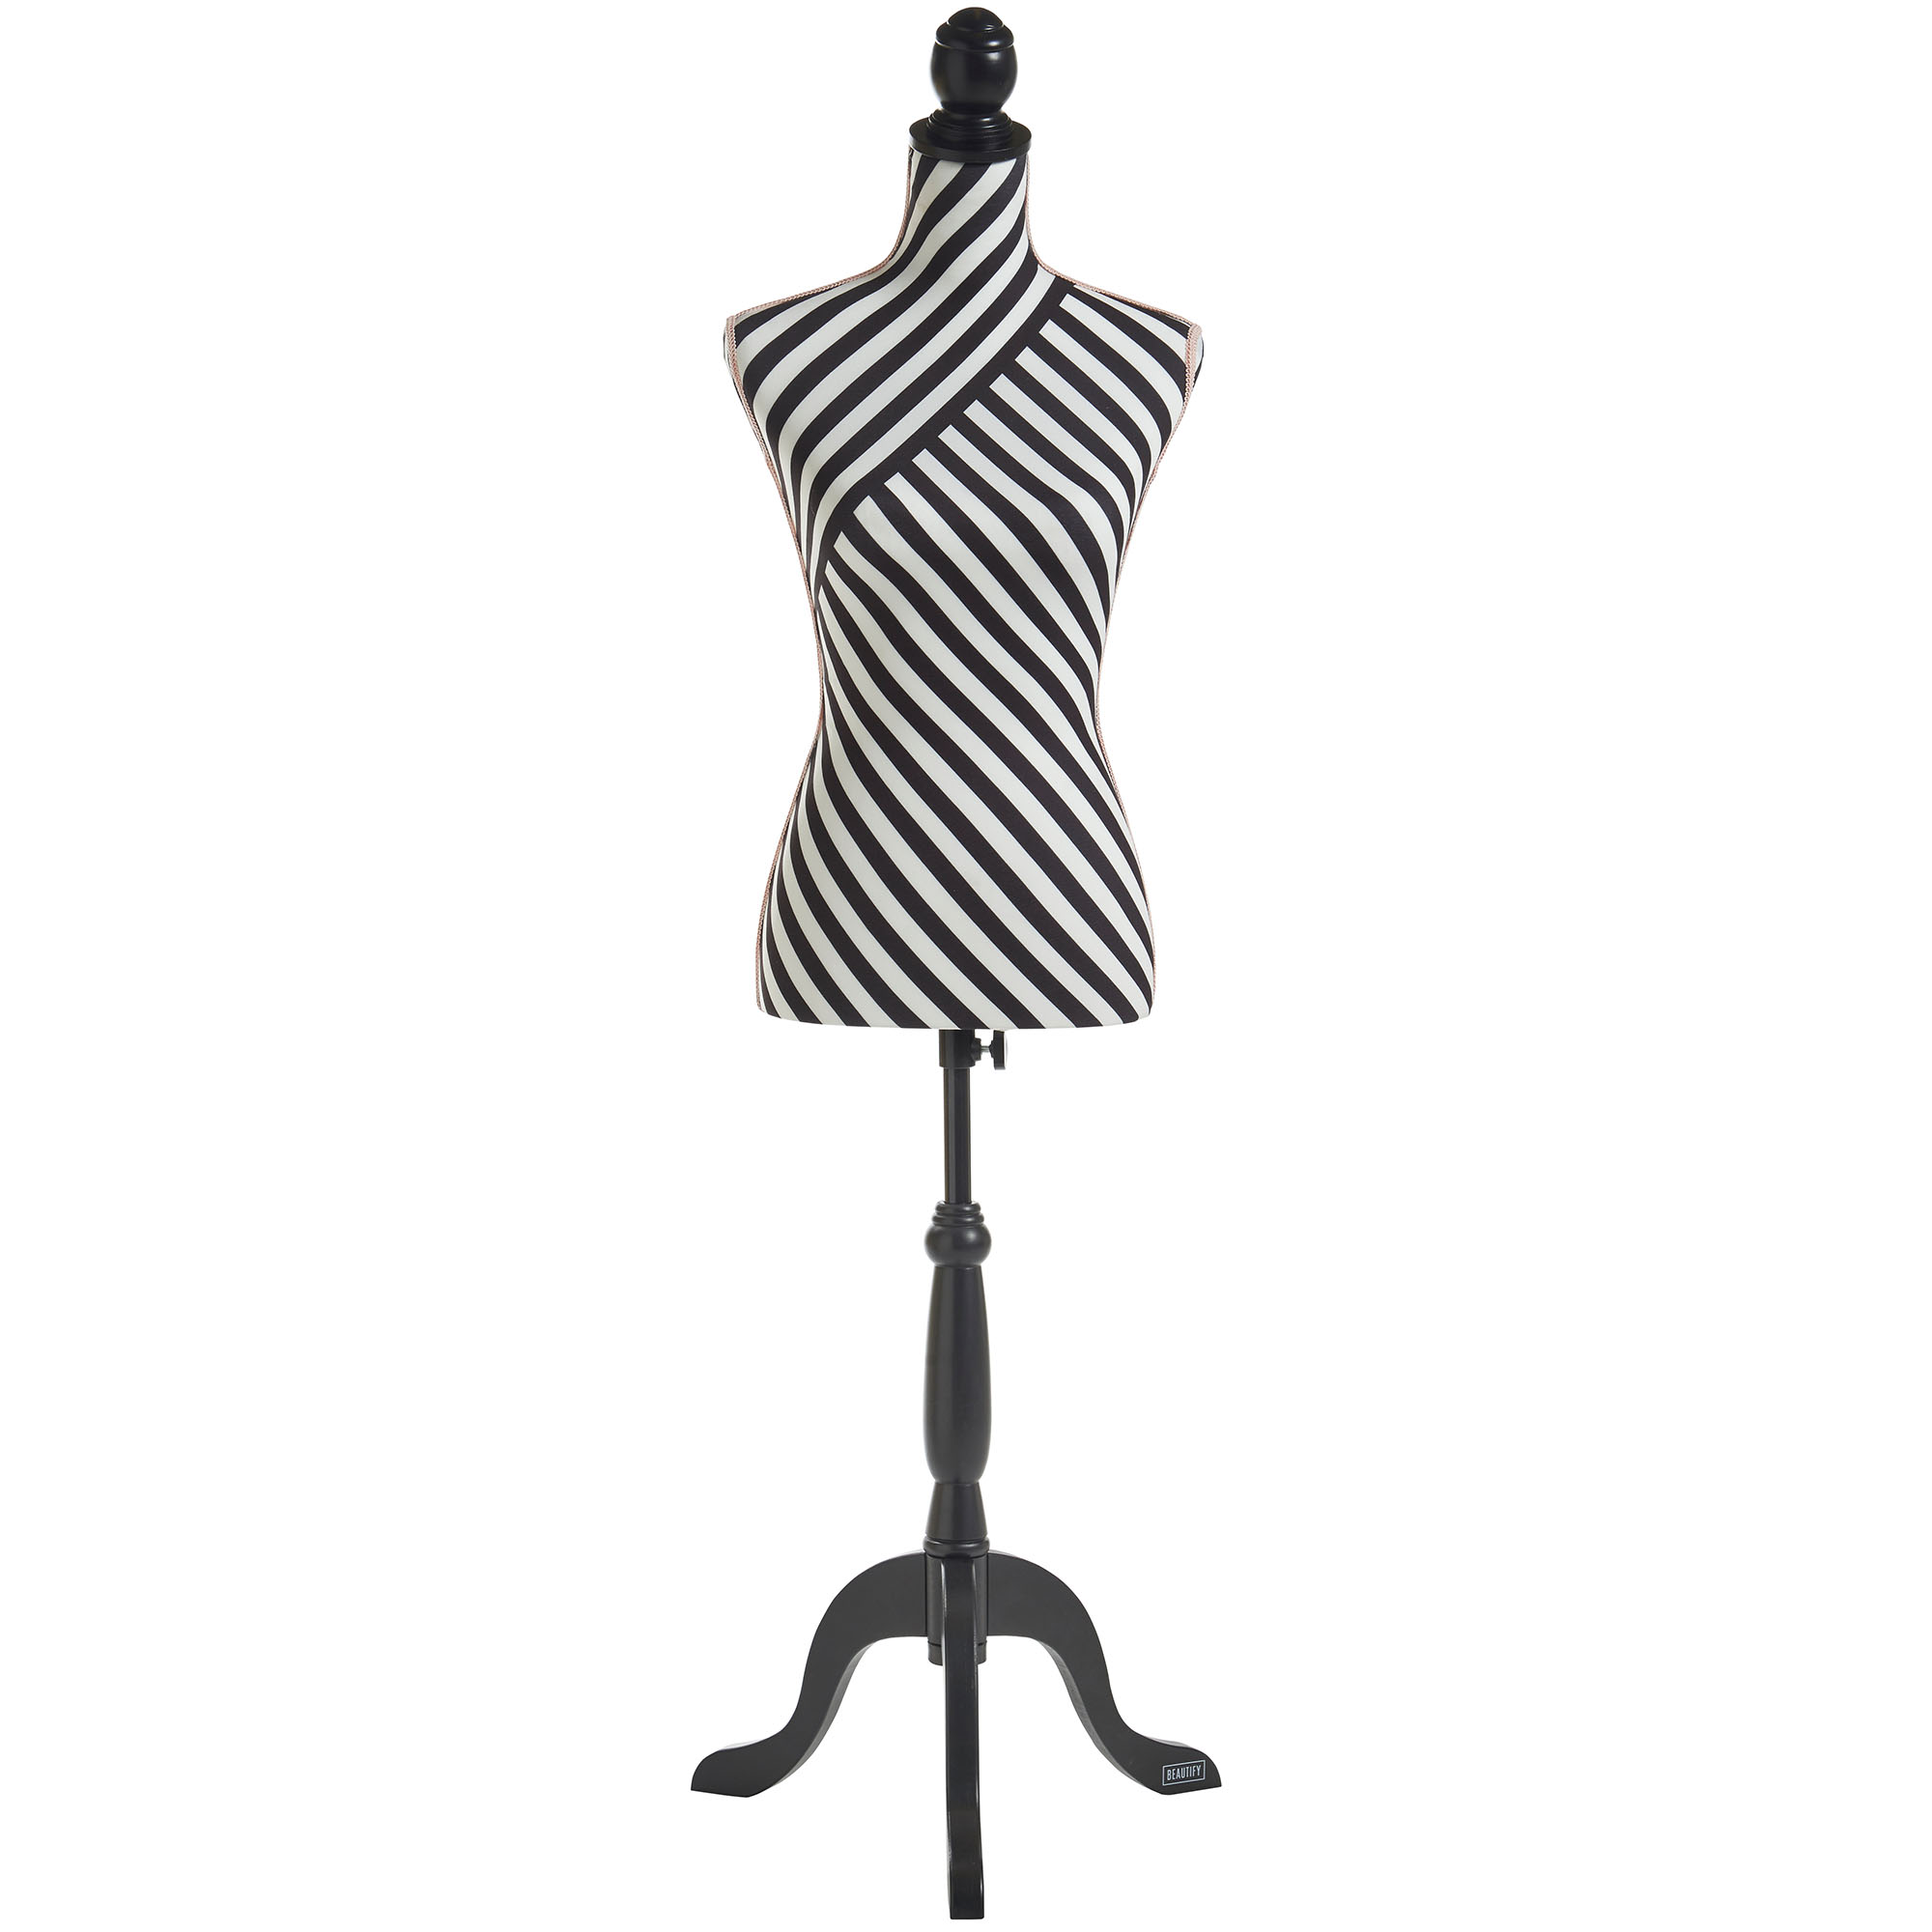 beautify female dressmaking tailor dummy bust stand. Black Bedroom Furniture Sets. Home Design Ideas